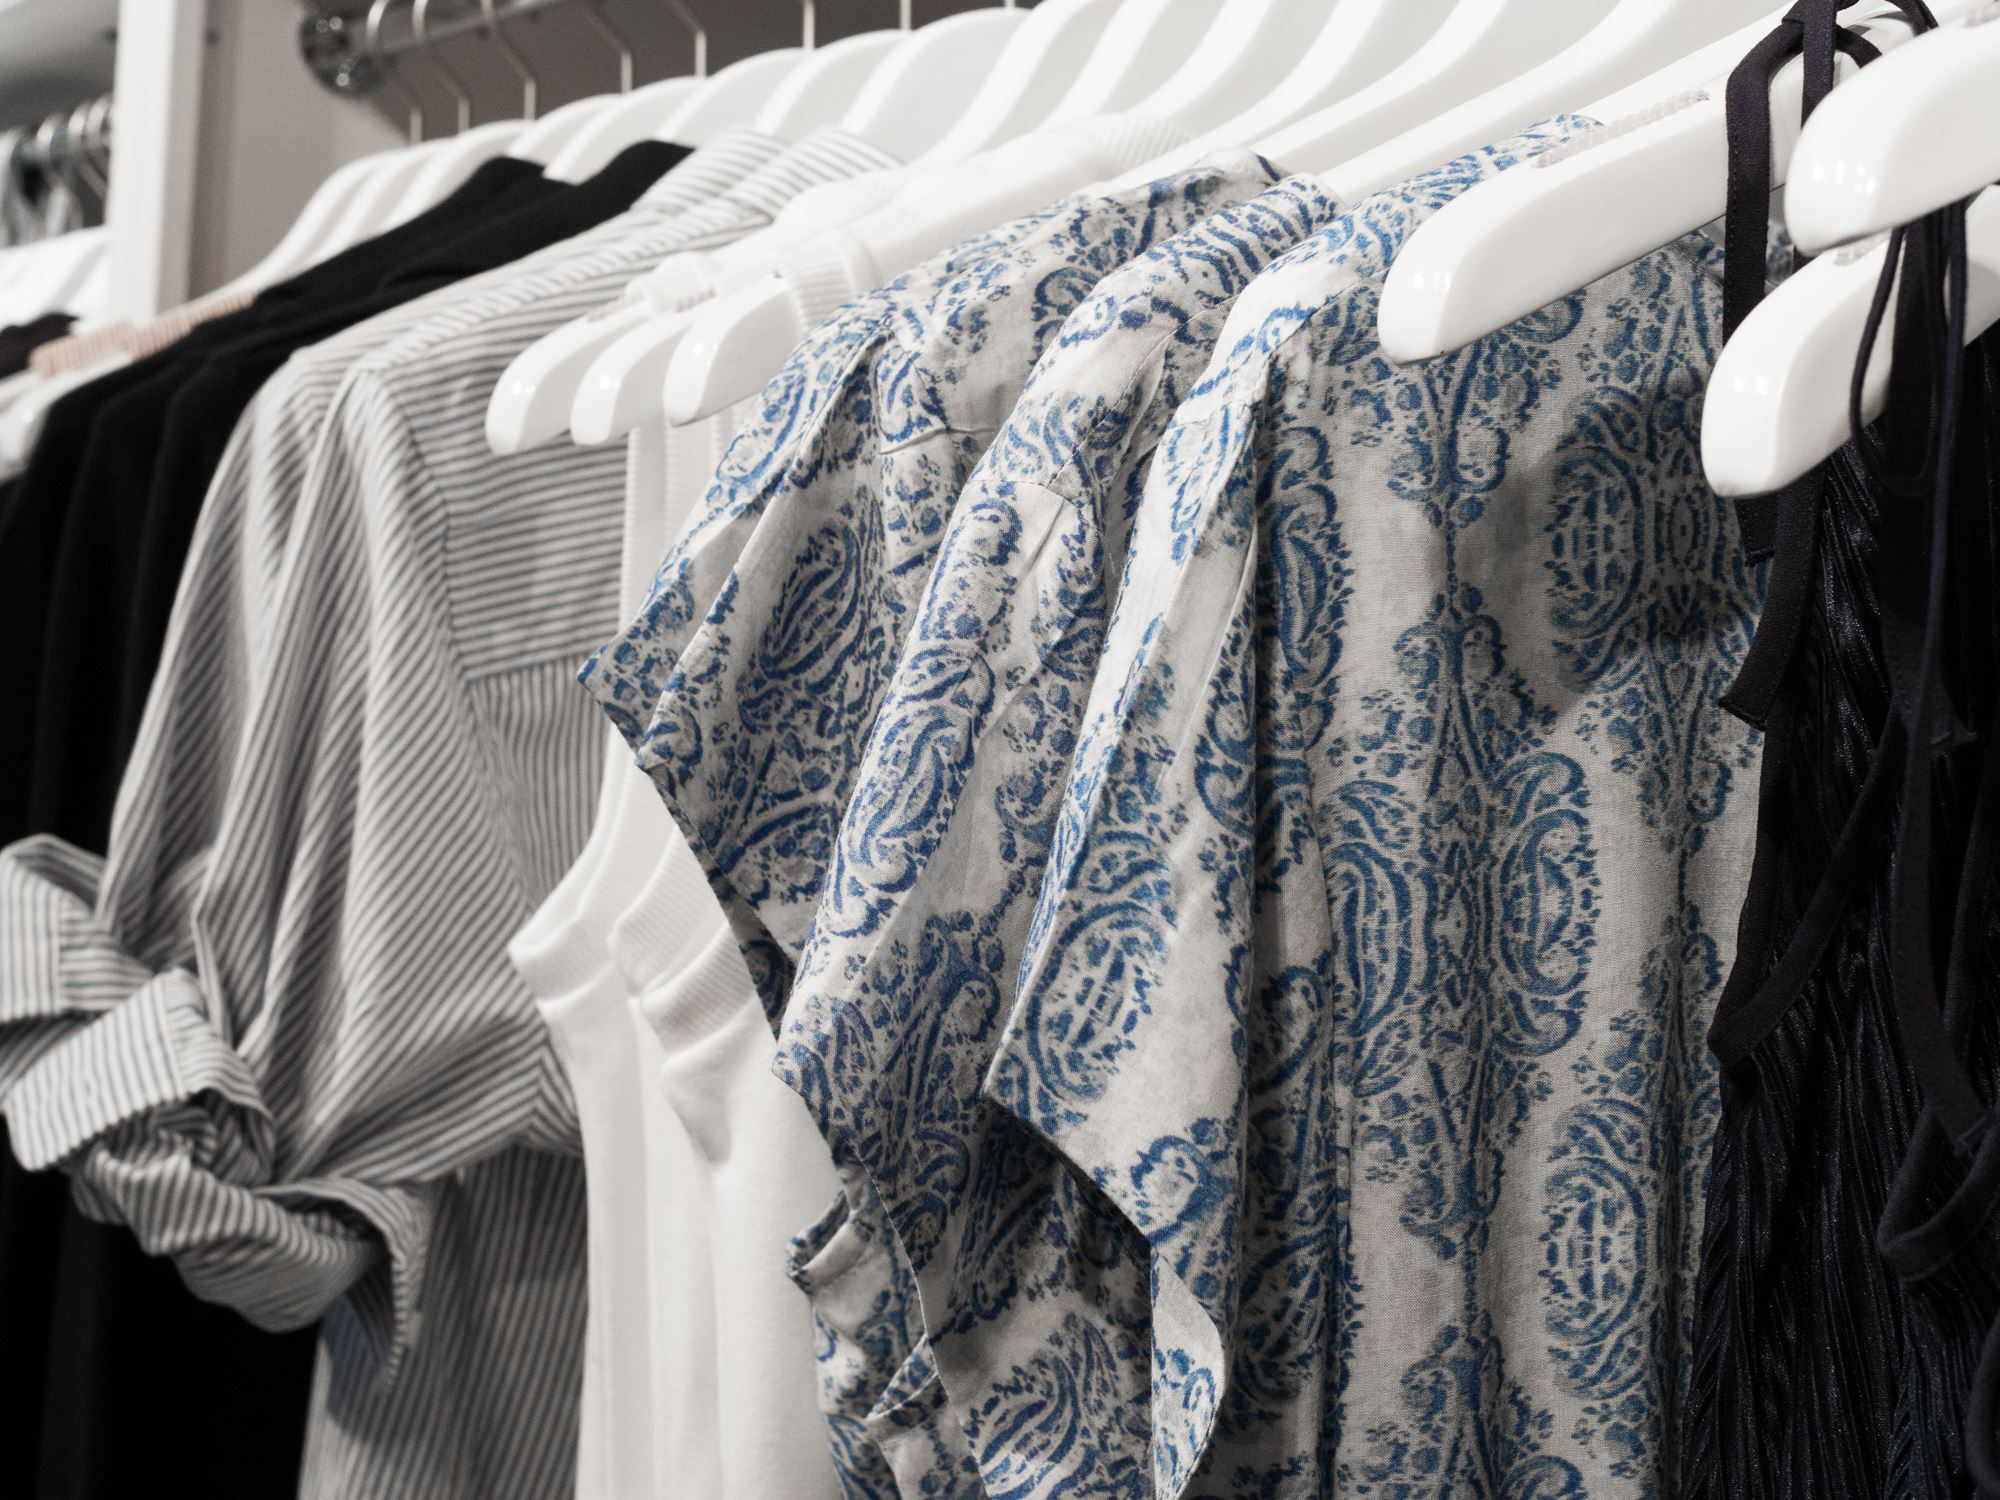 Lexington's clothing line | Two Drops Of Water